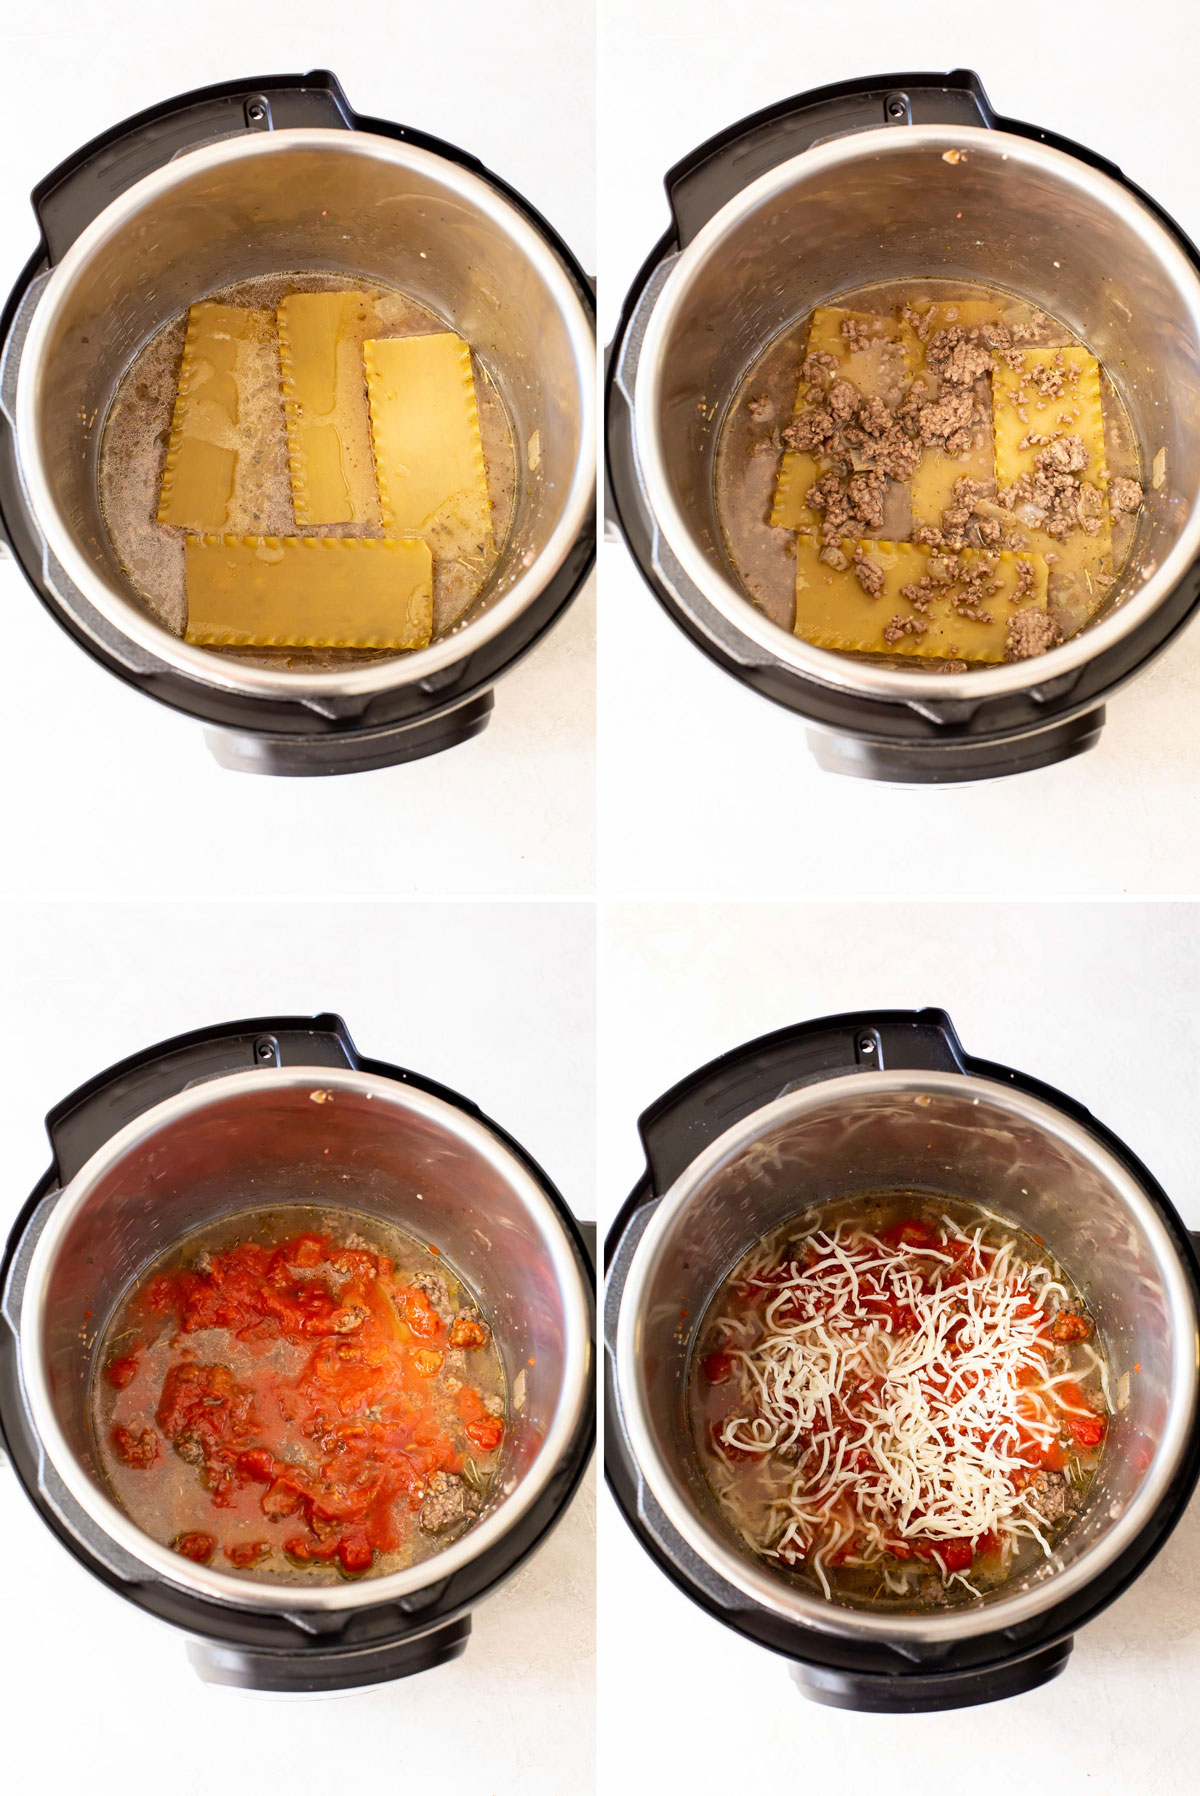 four step by step lasagna assembly photos showing noodles, then meat, then sauce, then cheese